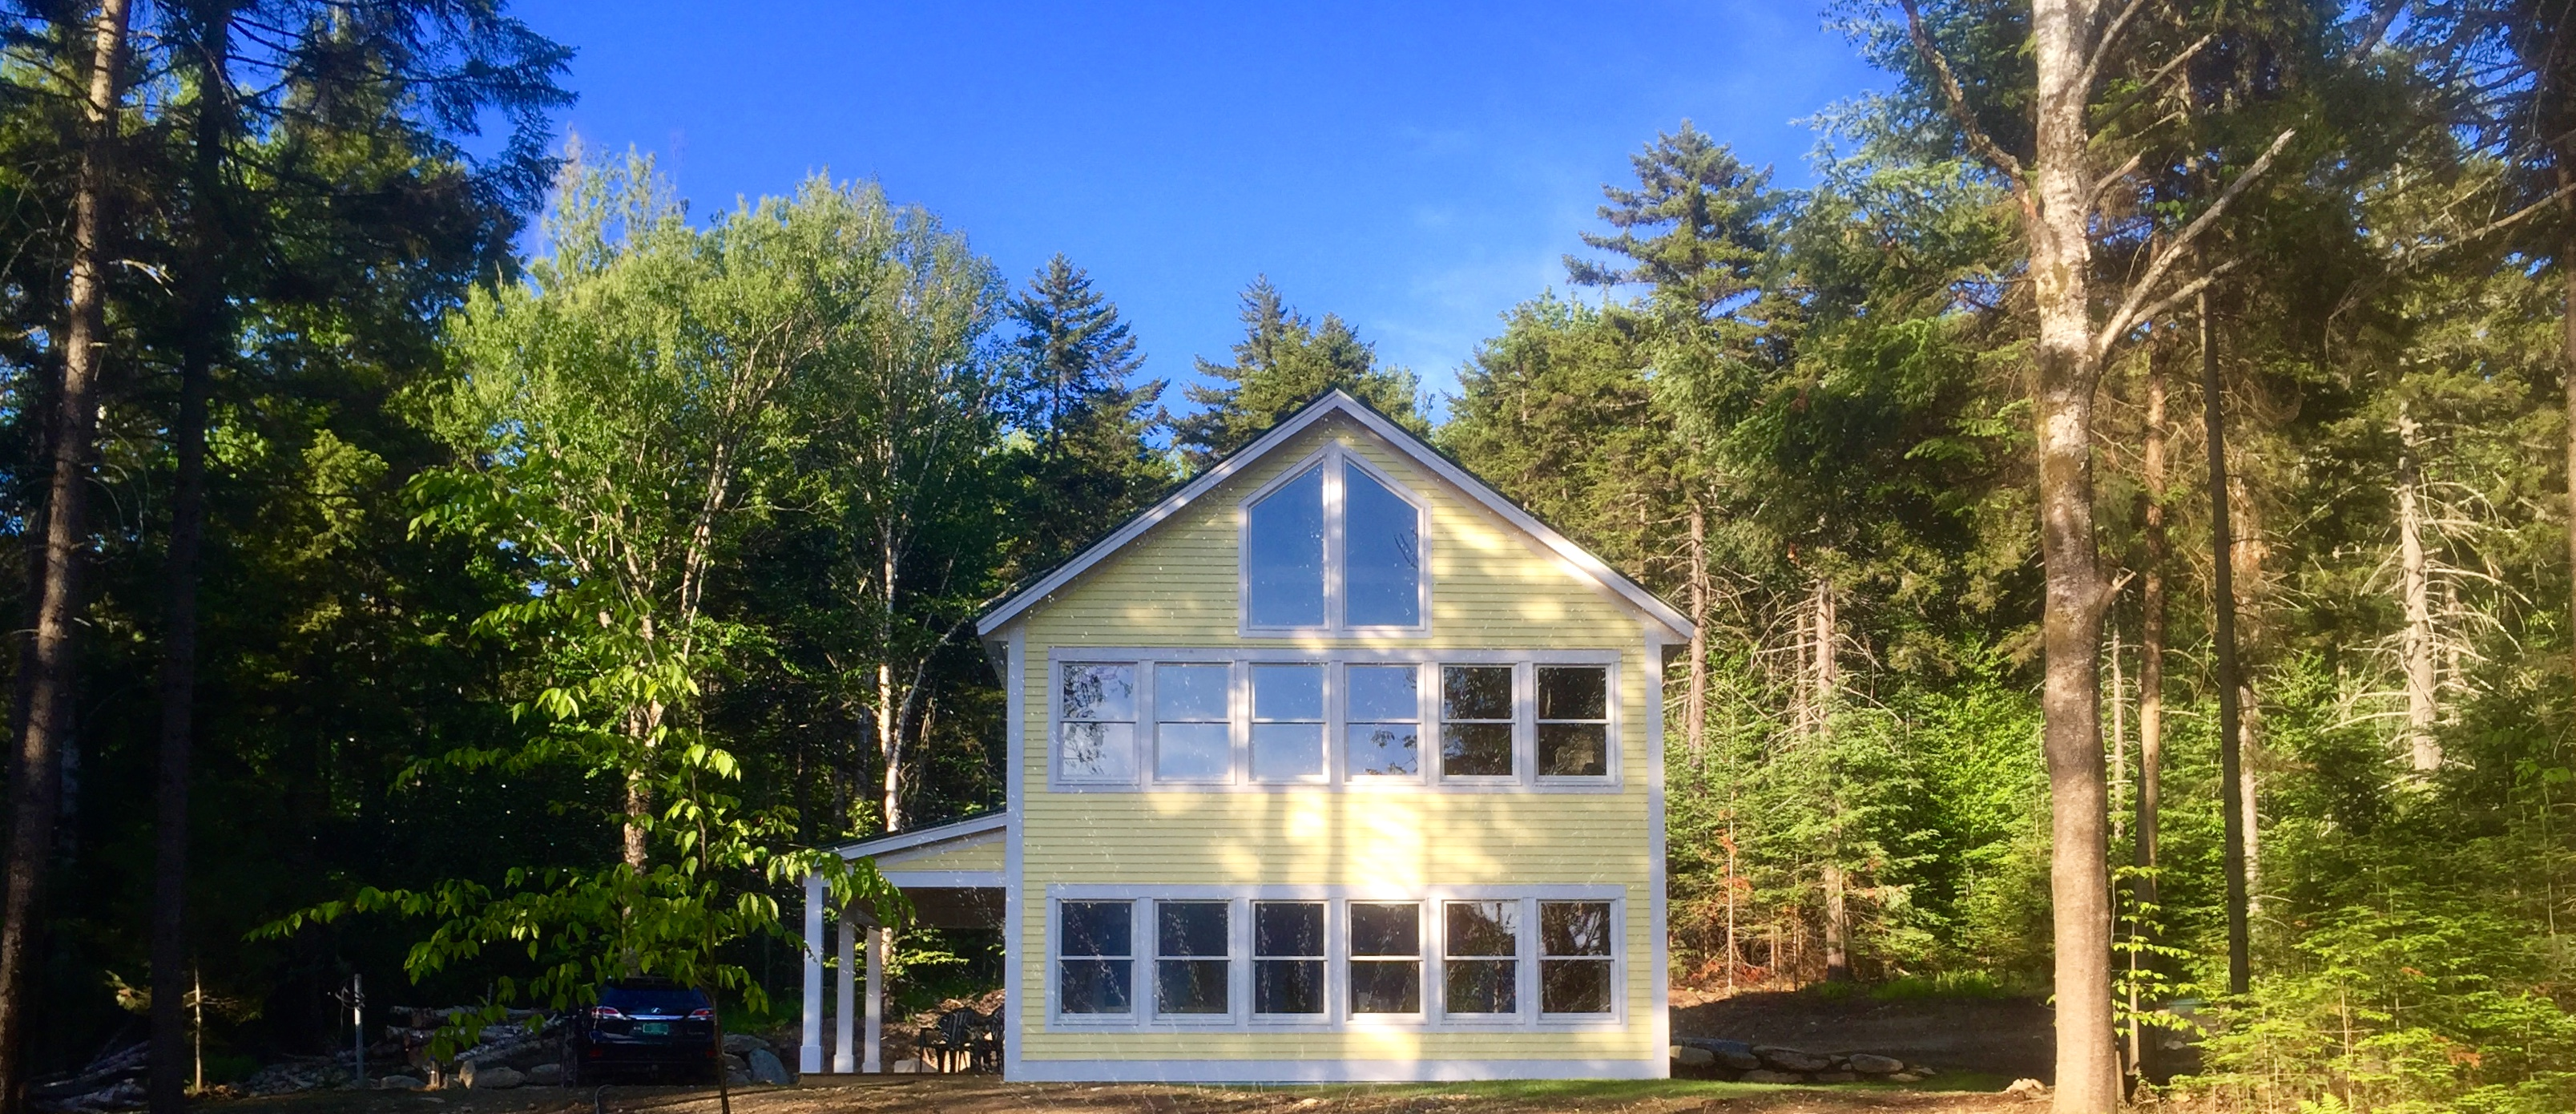 Stowe Vermont vacation home rental